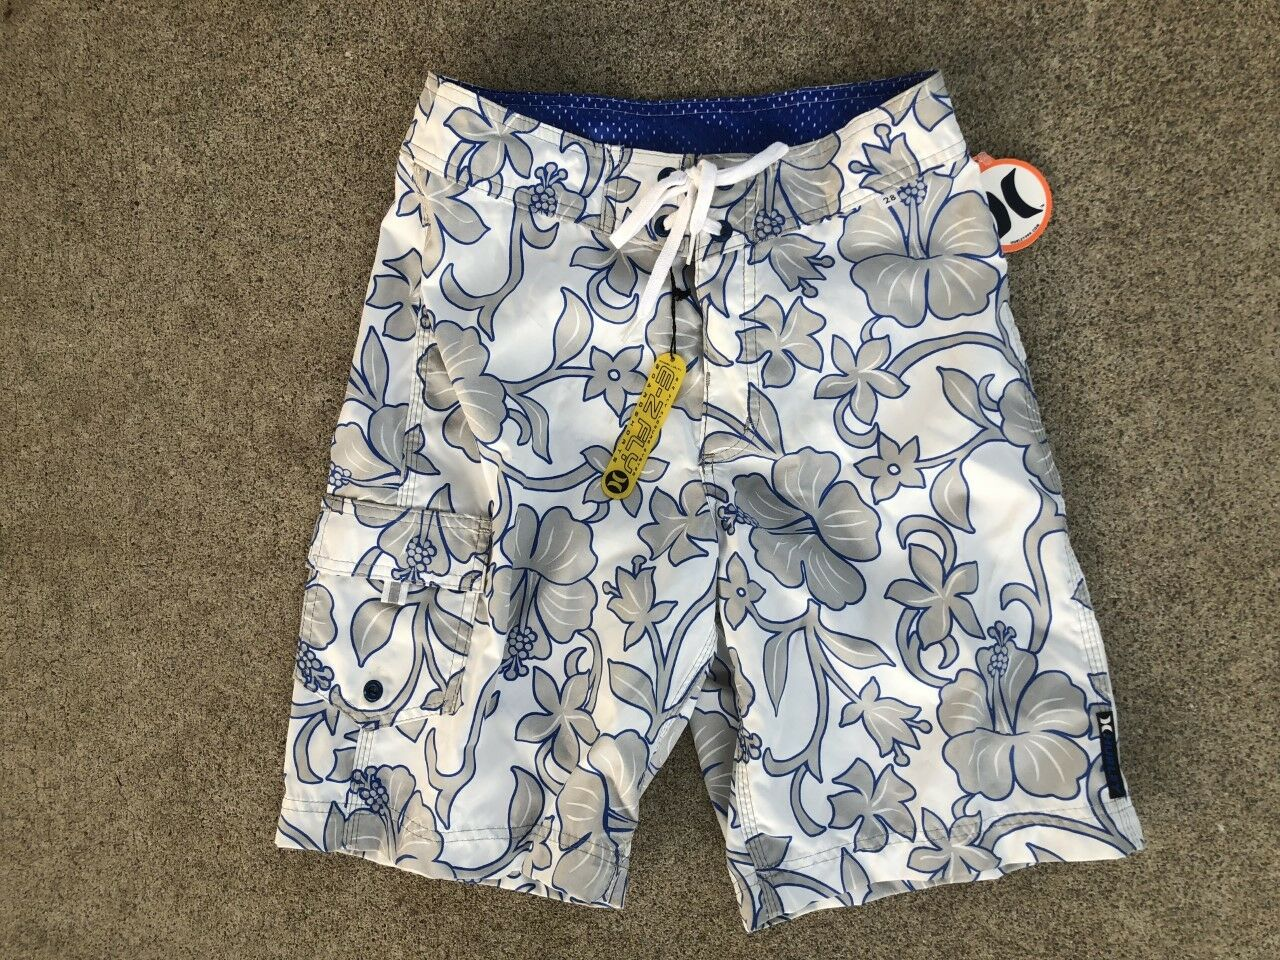 NEW HURLEY BOARDSHORTS SURF SUP SURFING HAWAII TRUNKS  SIZE 28